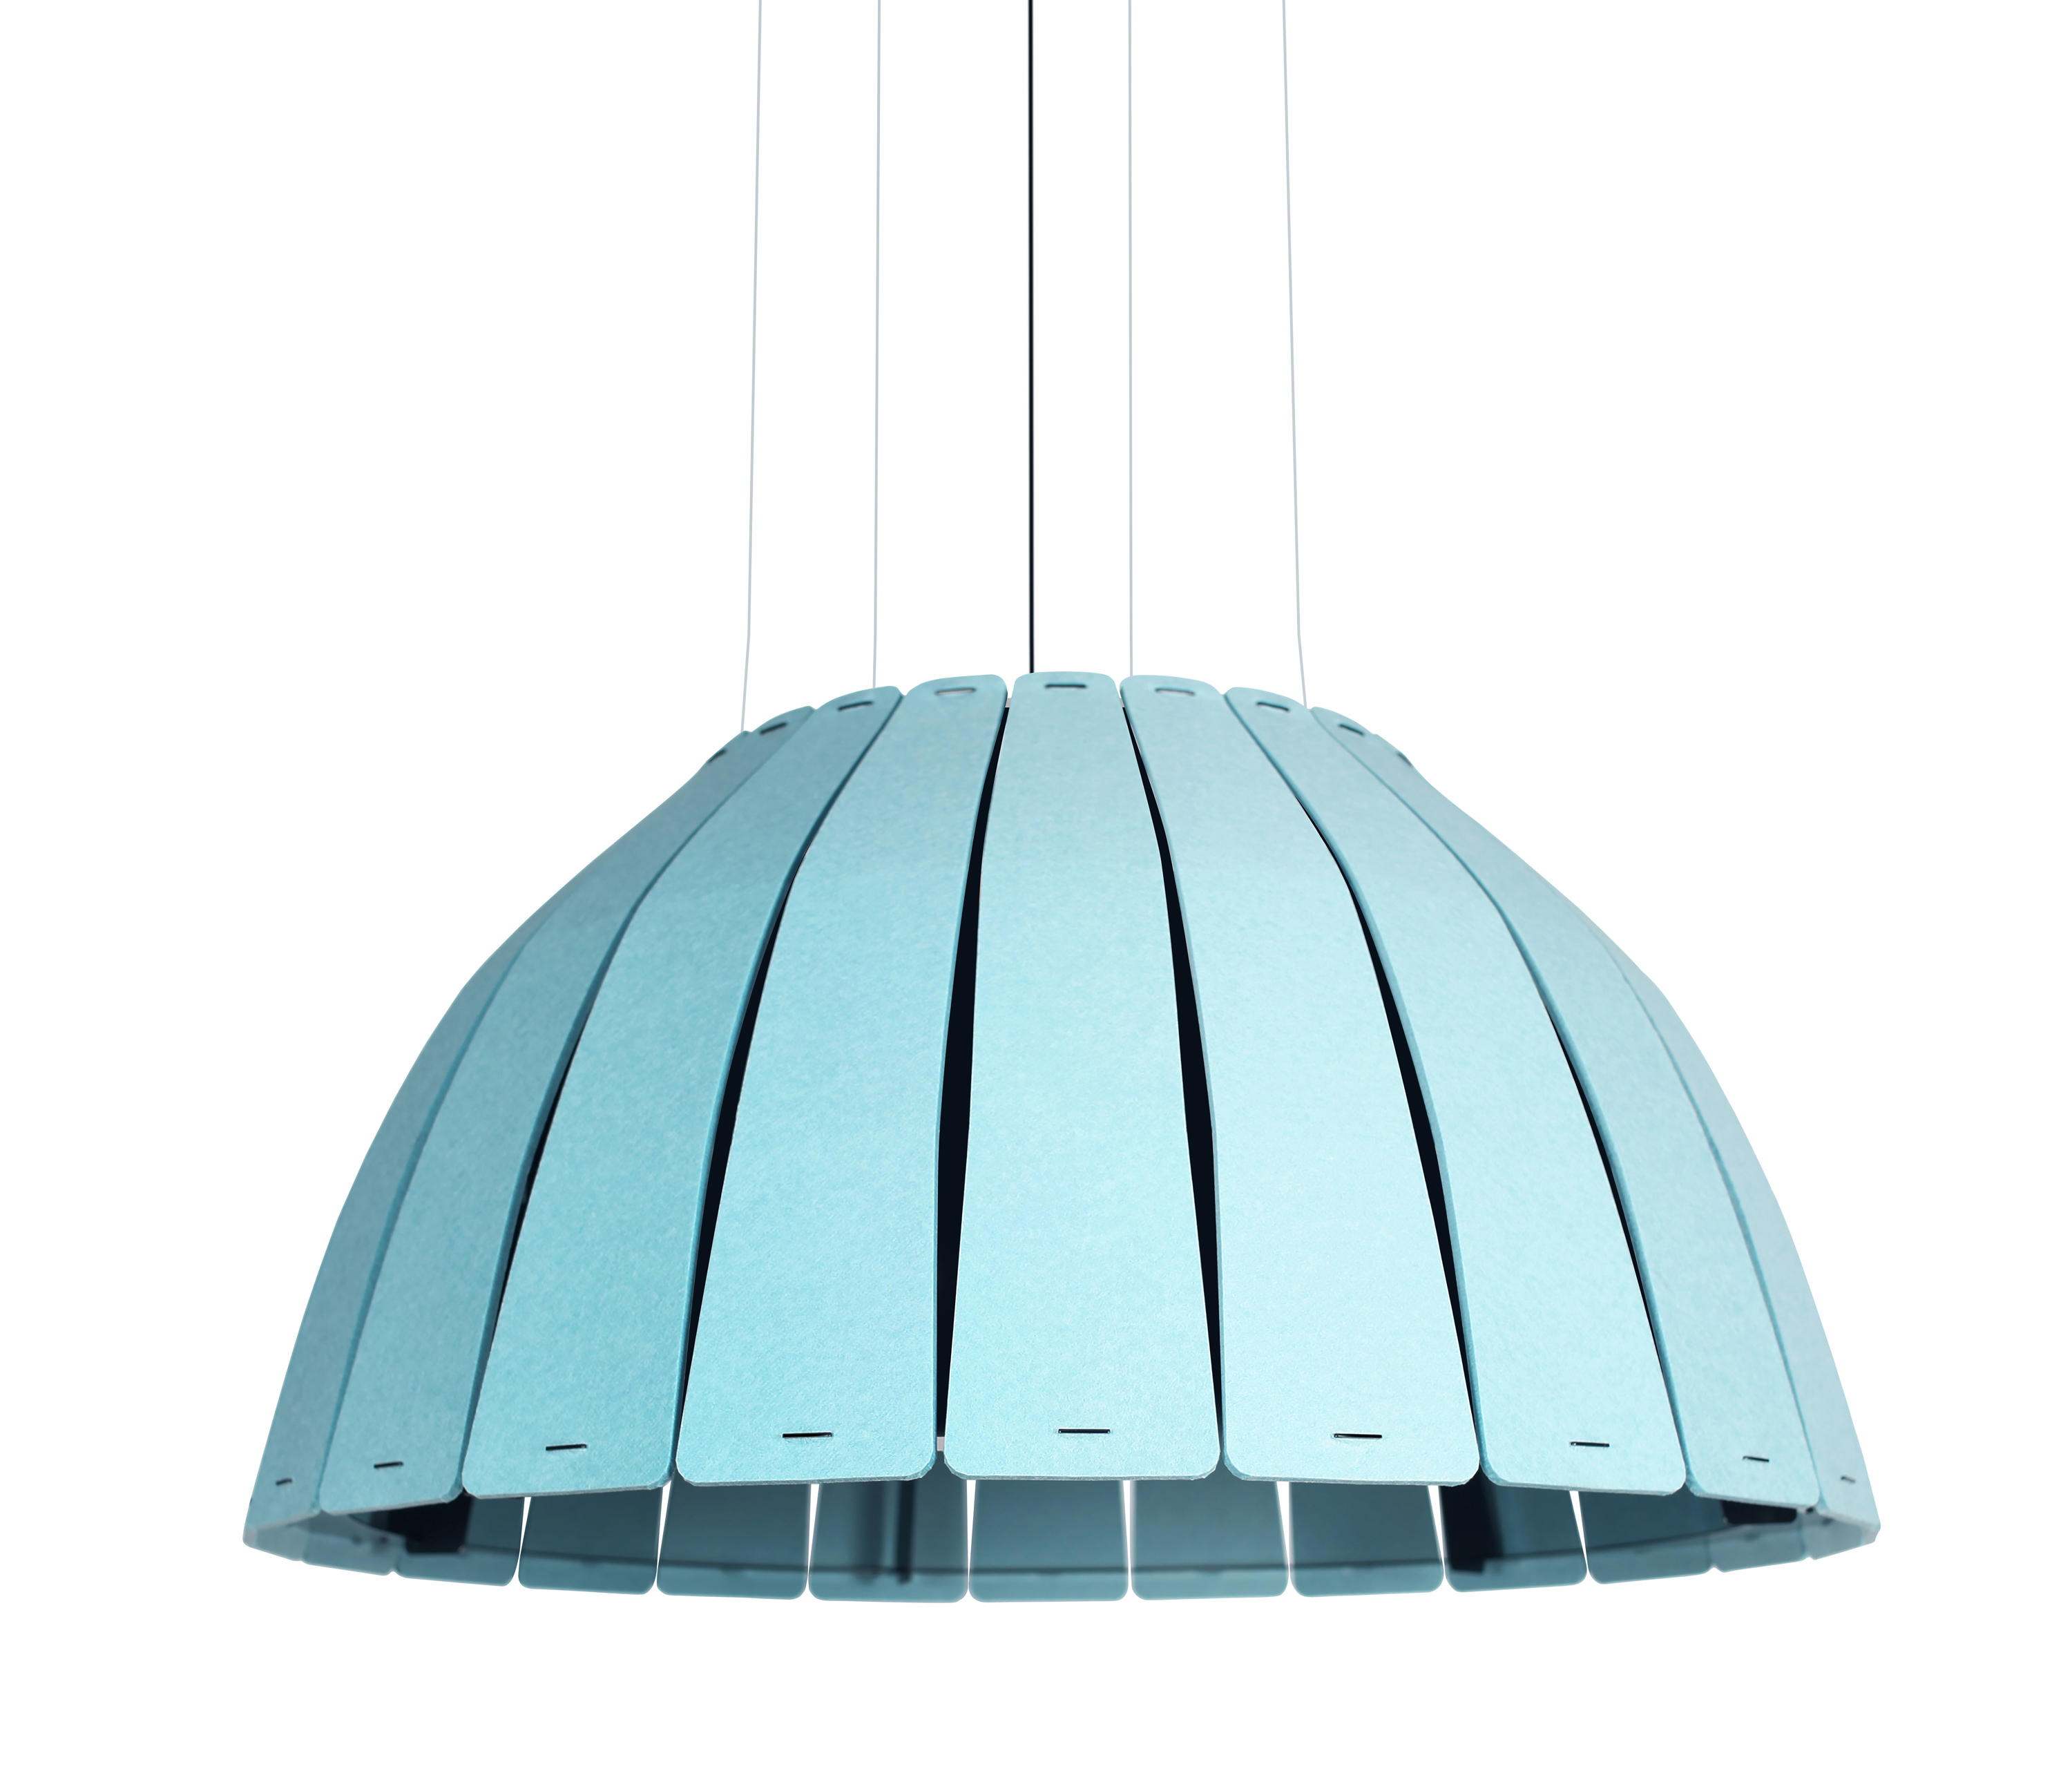 Birdcage | Pendant Light Blue by Luxxbox | General lighting ...  sc 1 st  Architonic & BIRDCAGE | PENDANT LIGHT BLUE - General lighting from Luxxbox ... azcodes.com